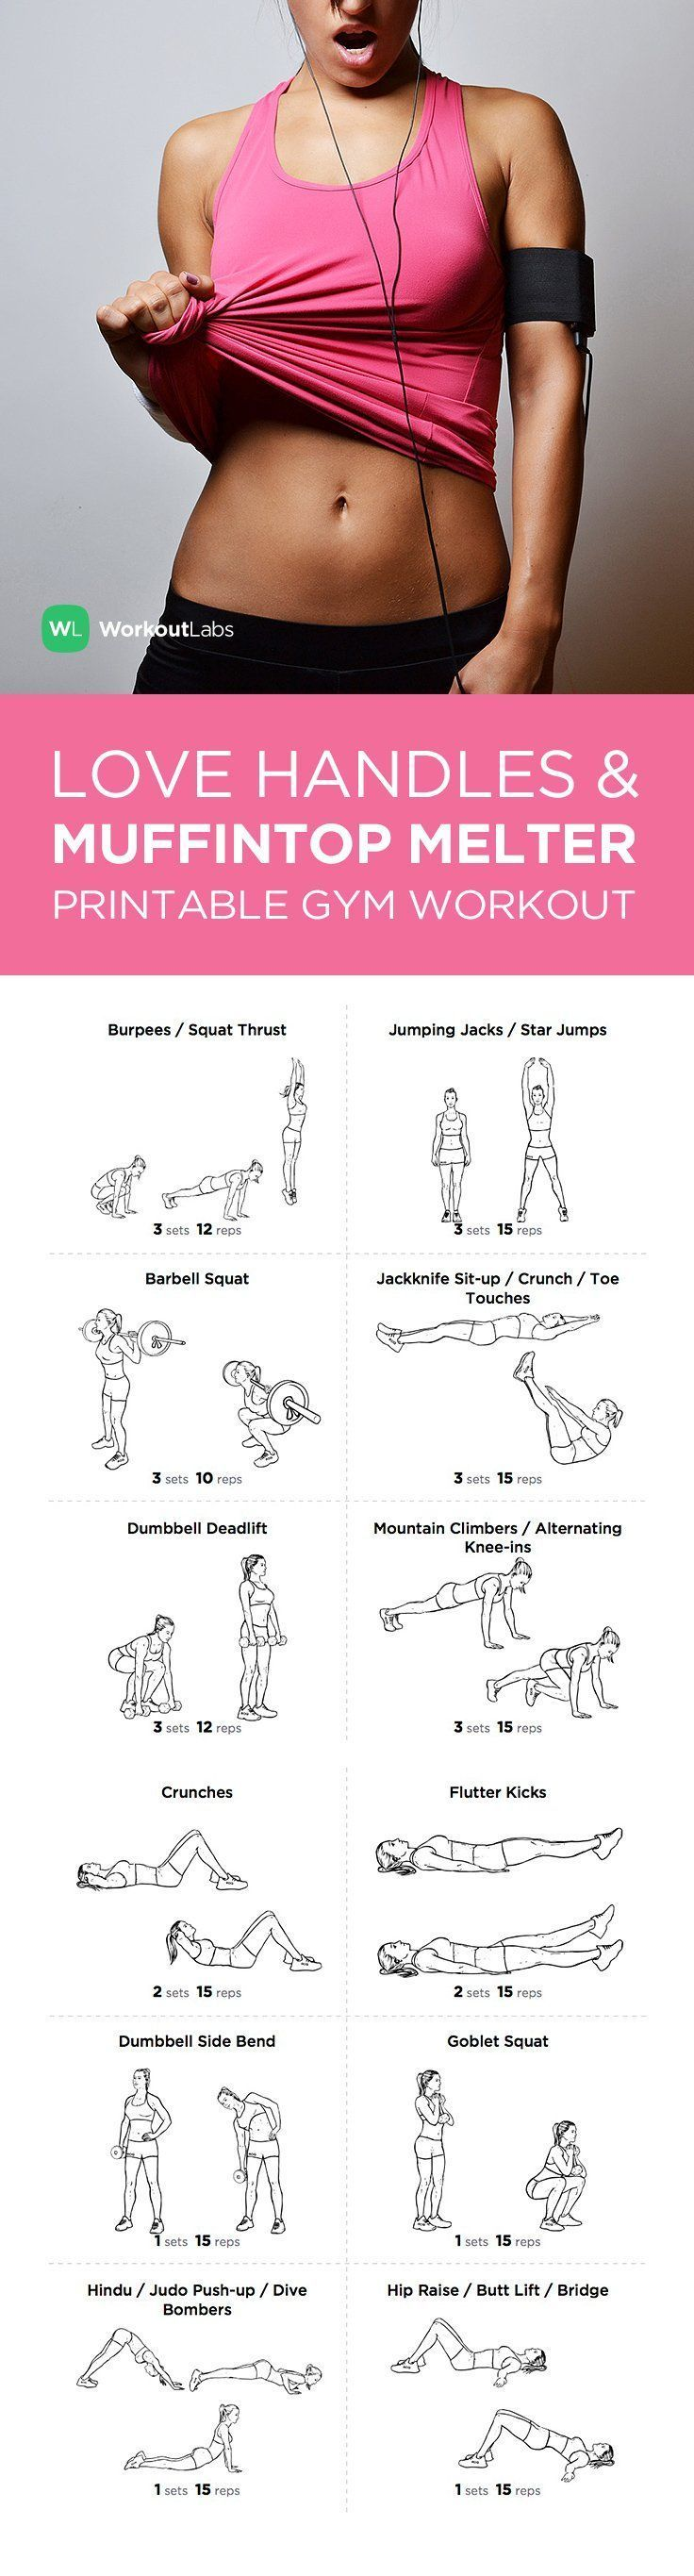 FREE PDF: Love Handles and Muffin Top Melter Printable Gym Workout for Women – visit wlabs.me/1sS9gnH to download!